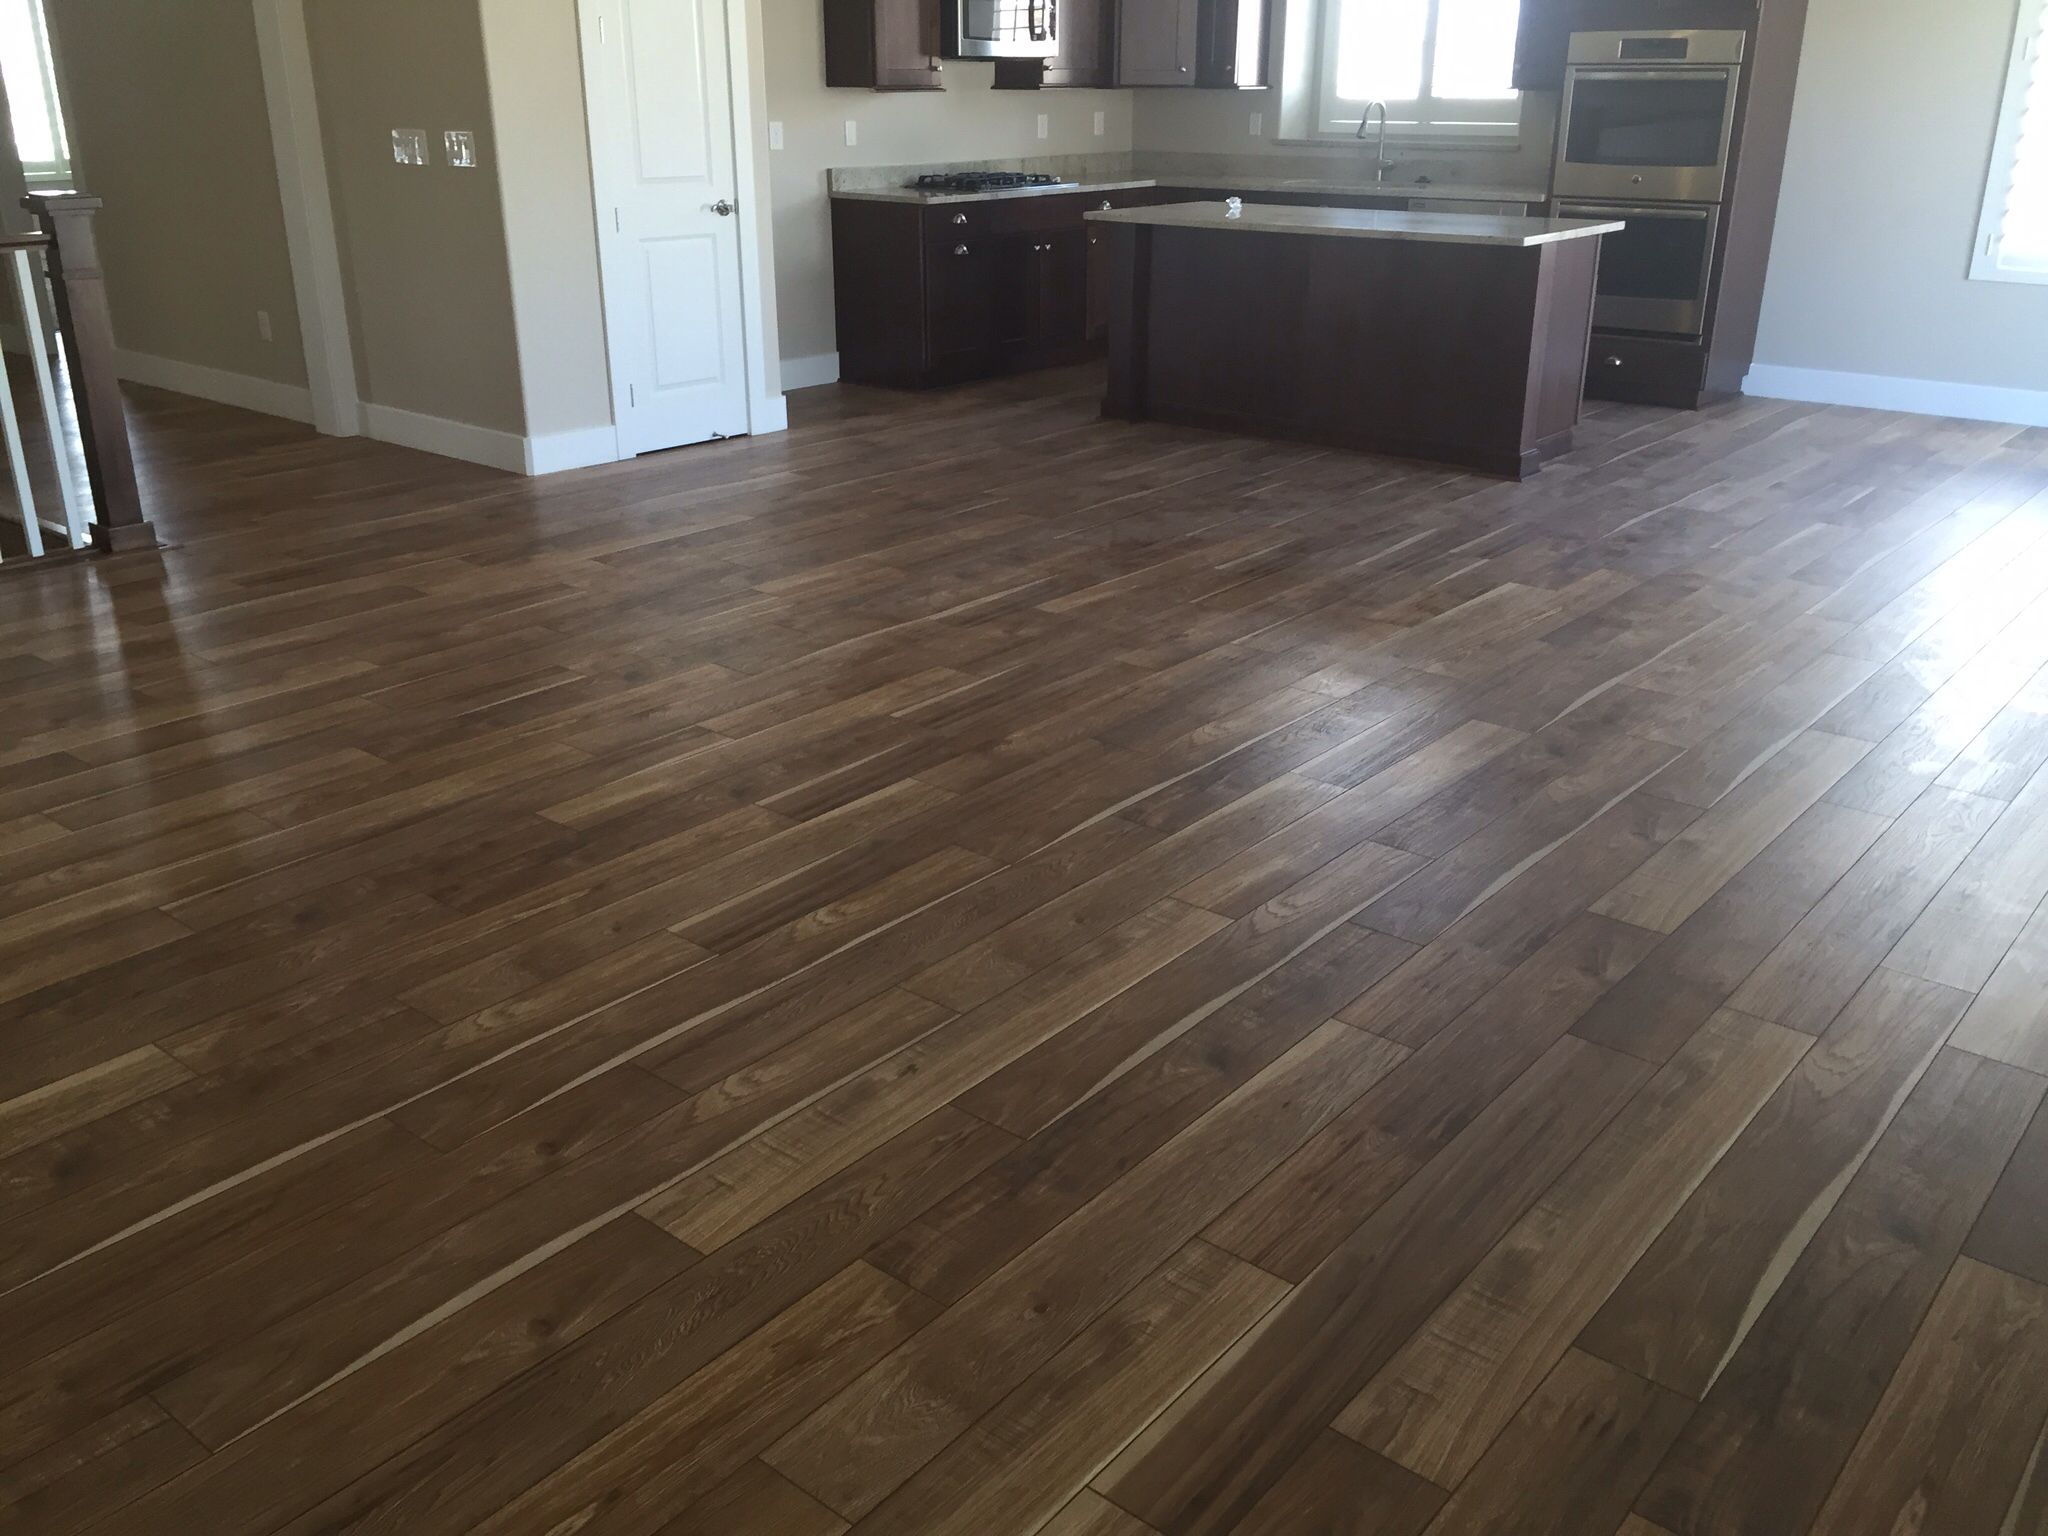 Mannington 39 S Restoration Collection This Is Sawmill Hickory Pretty Sweet Huh House Decor